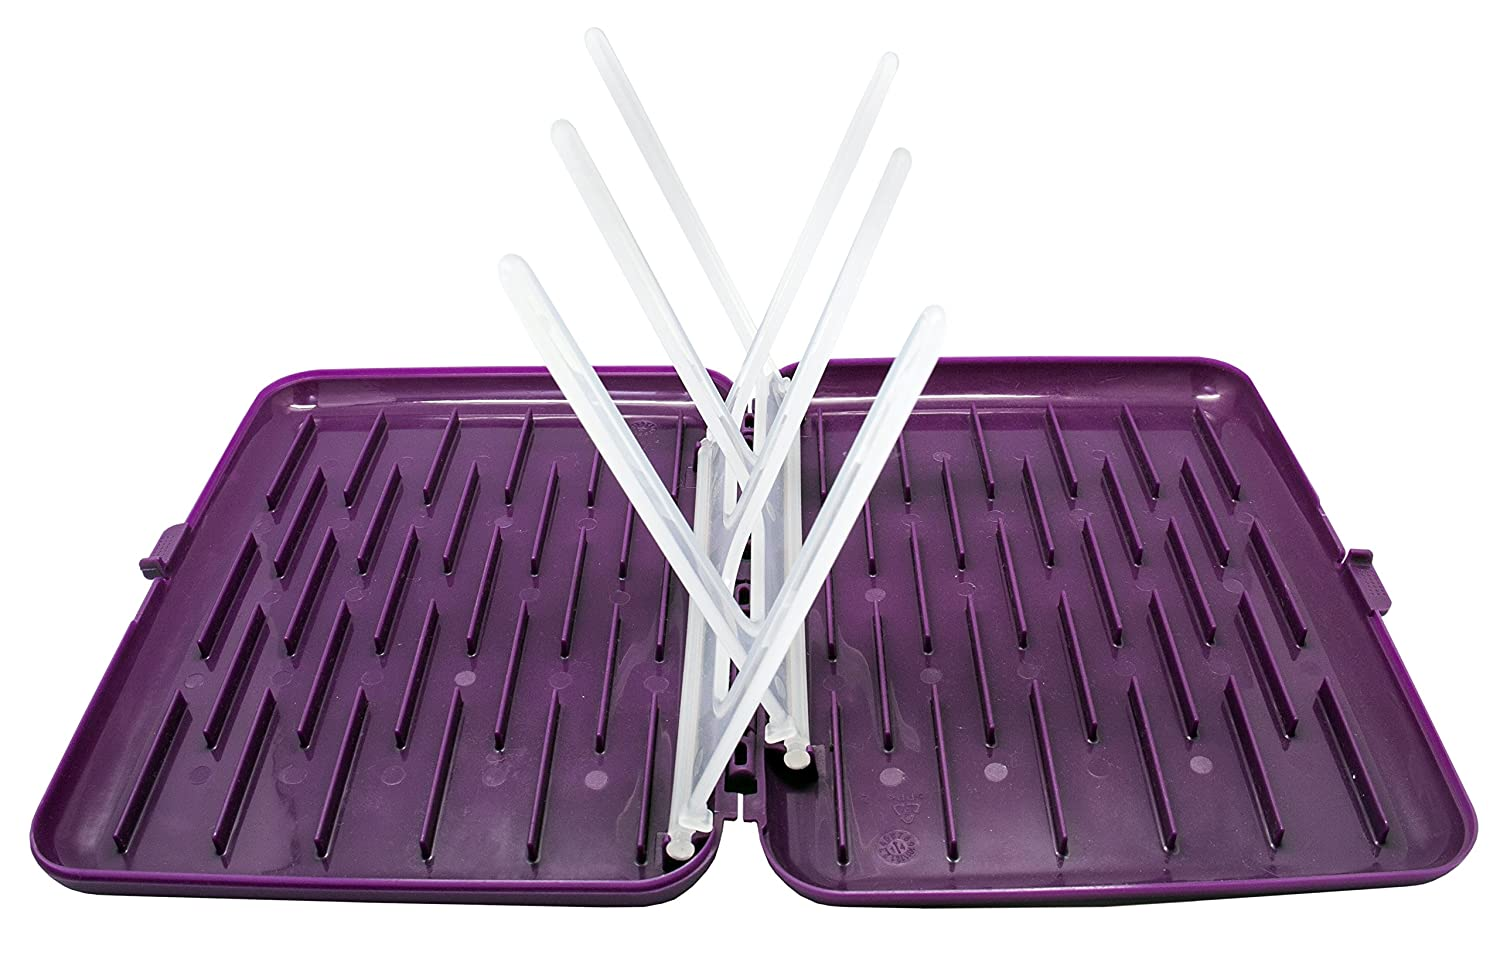 b.box Travel Drying Rack for Baby Feeding Accessories & Equipment (Grape) 9319064003430